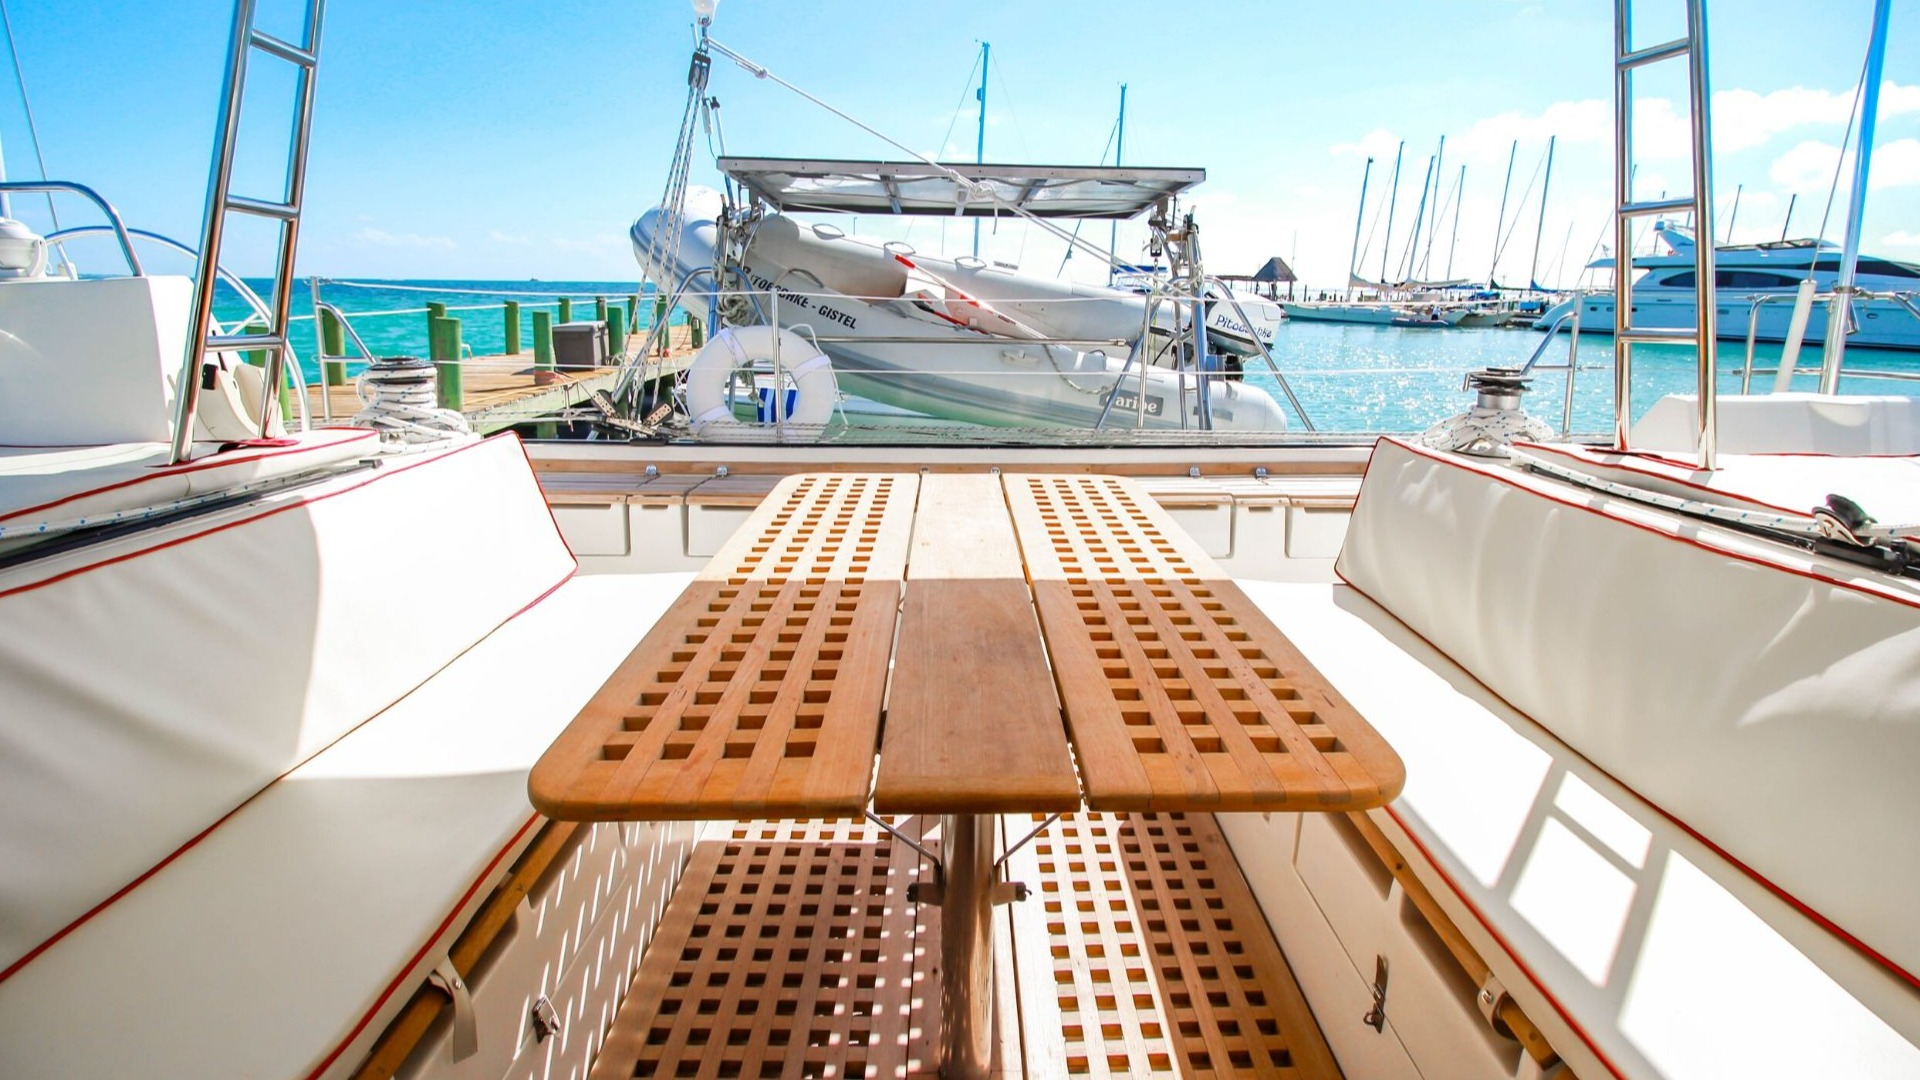 1 - LowRes - Max - Private tour to Isla Mujeres in catamaran - Cancun Sailing